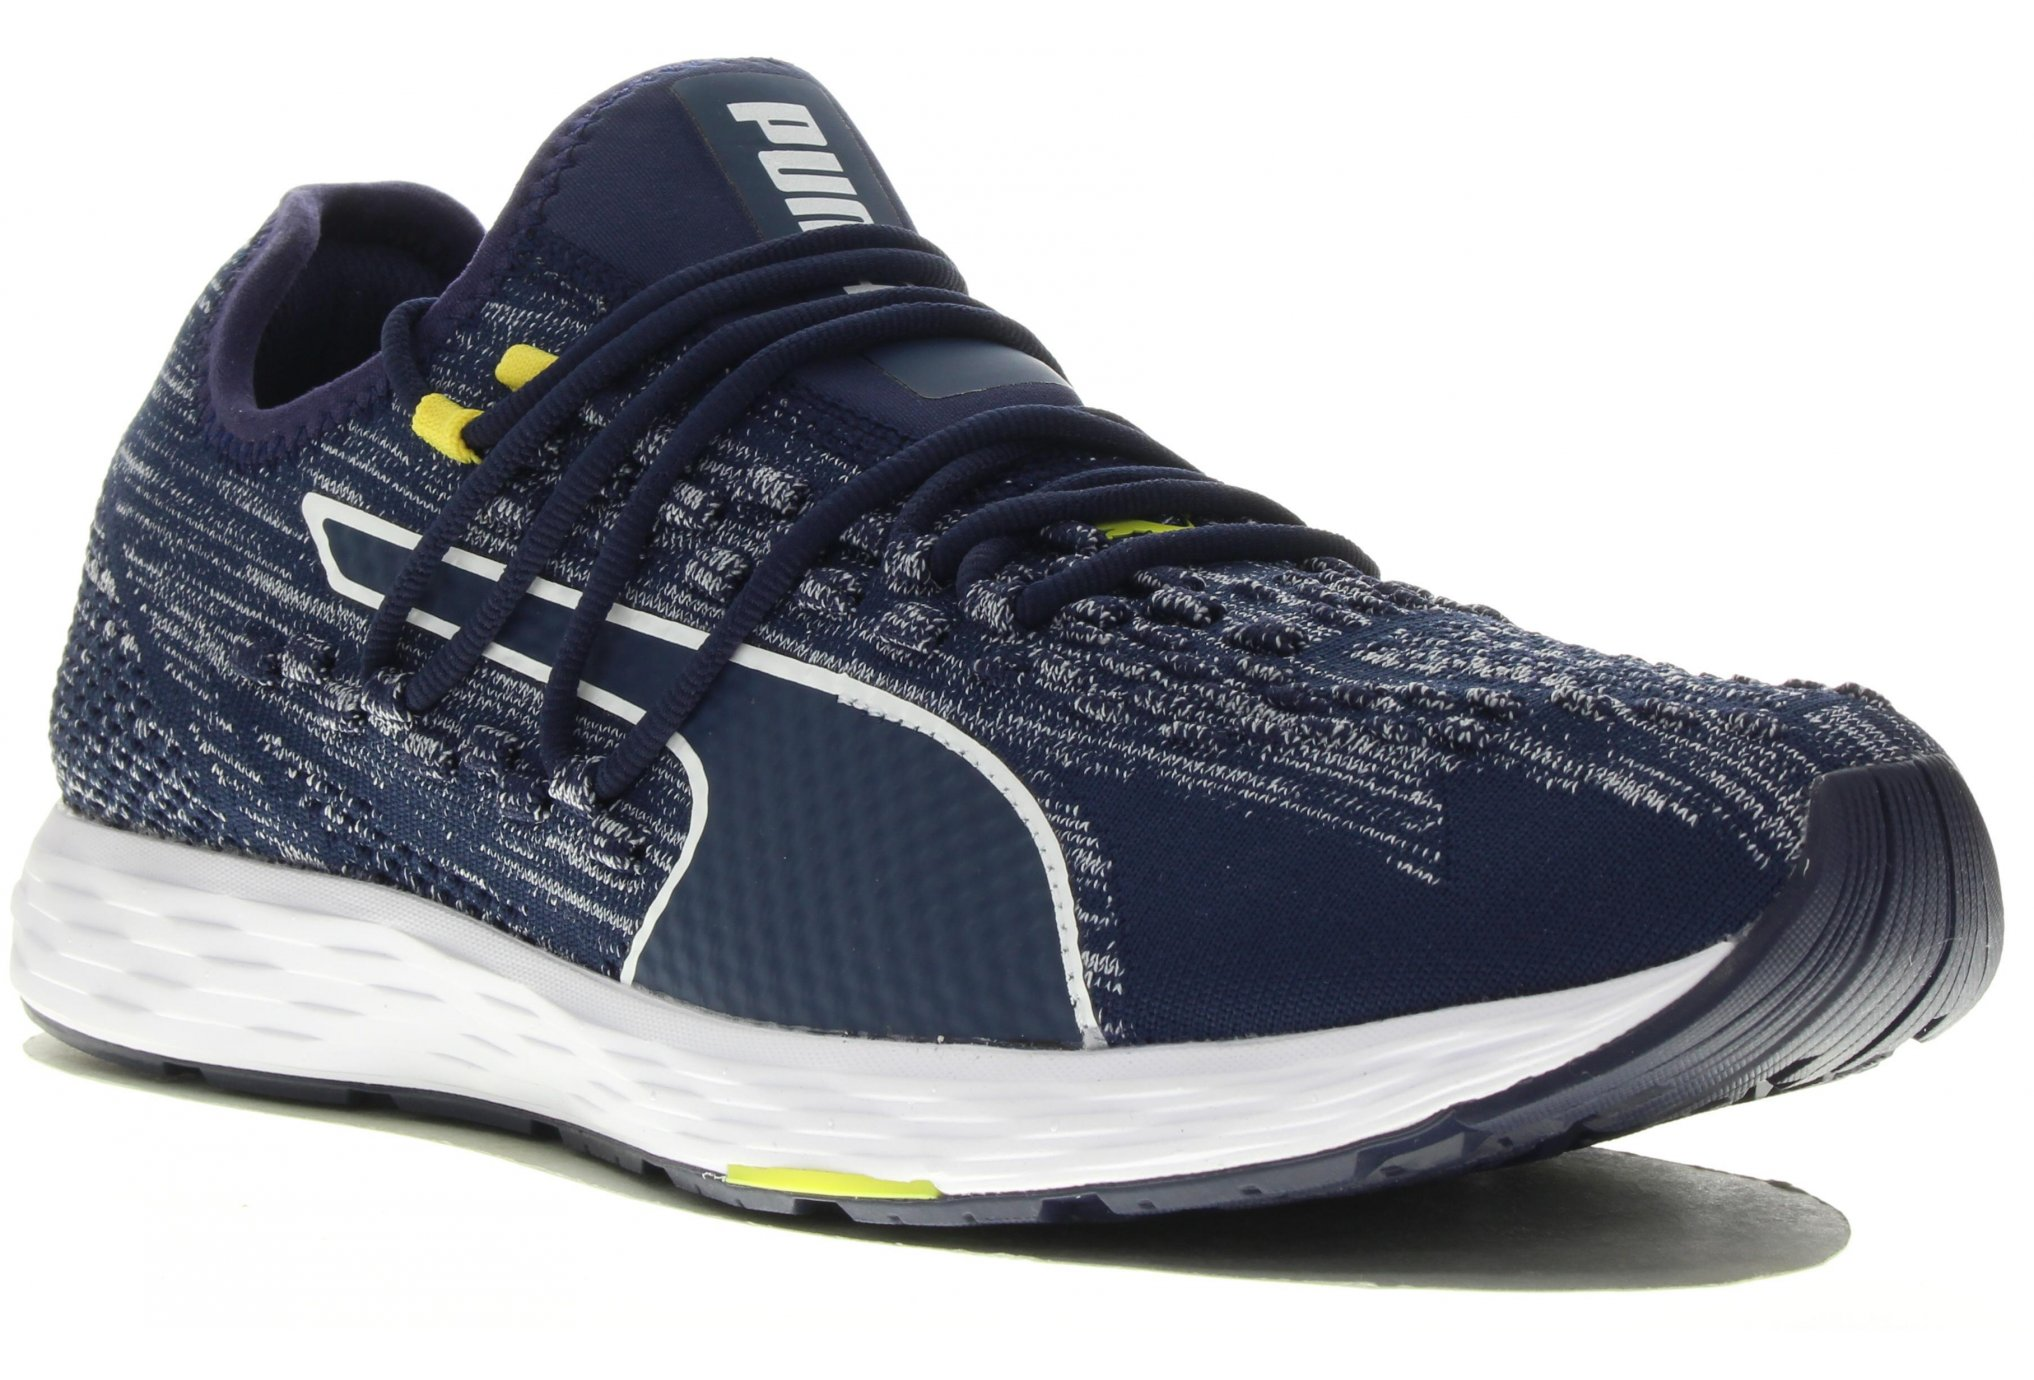 Puma Speed 300 Racer Fusefit Chaussures homme